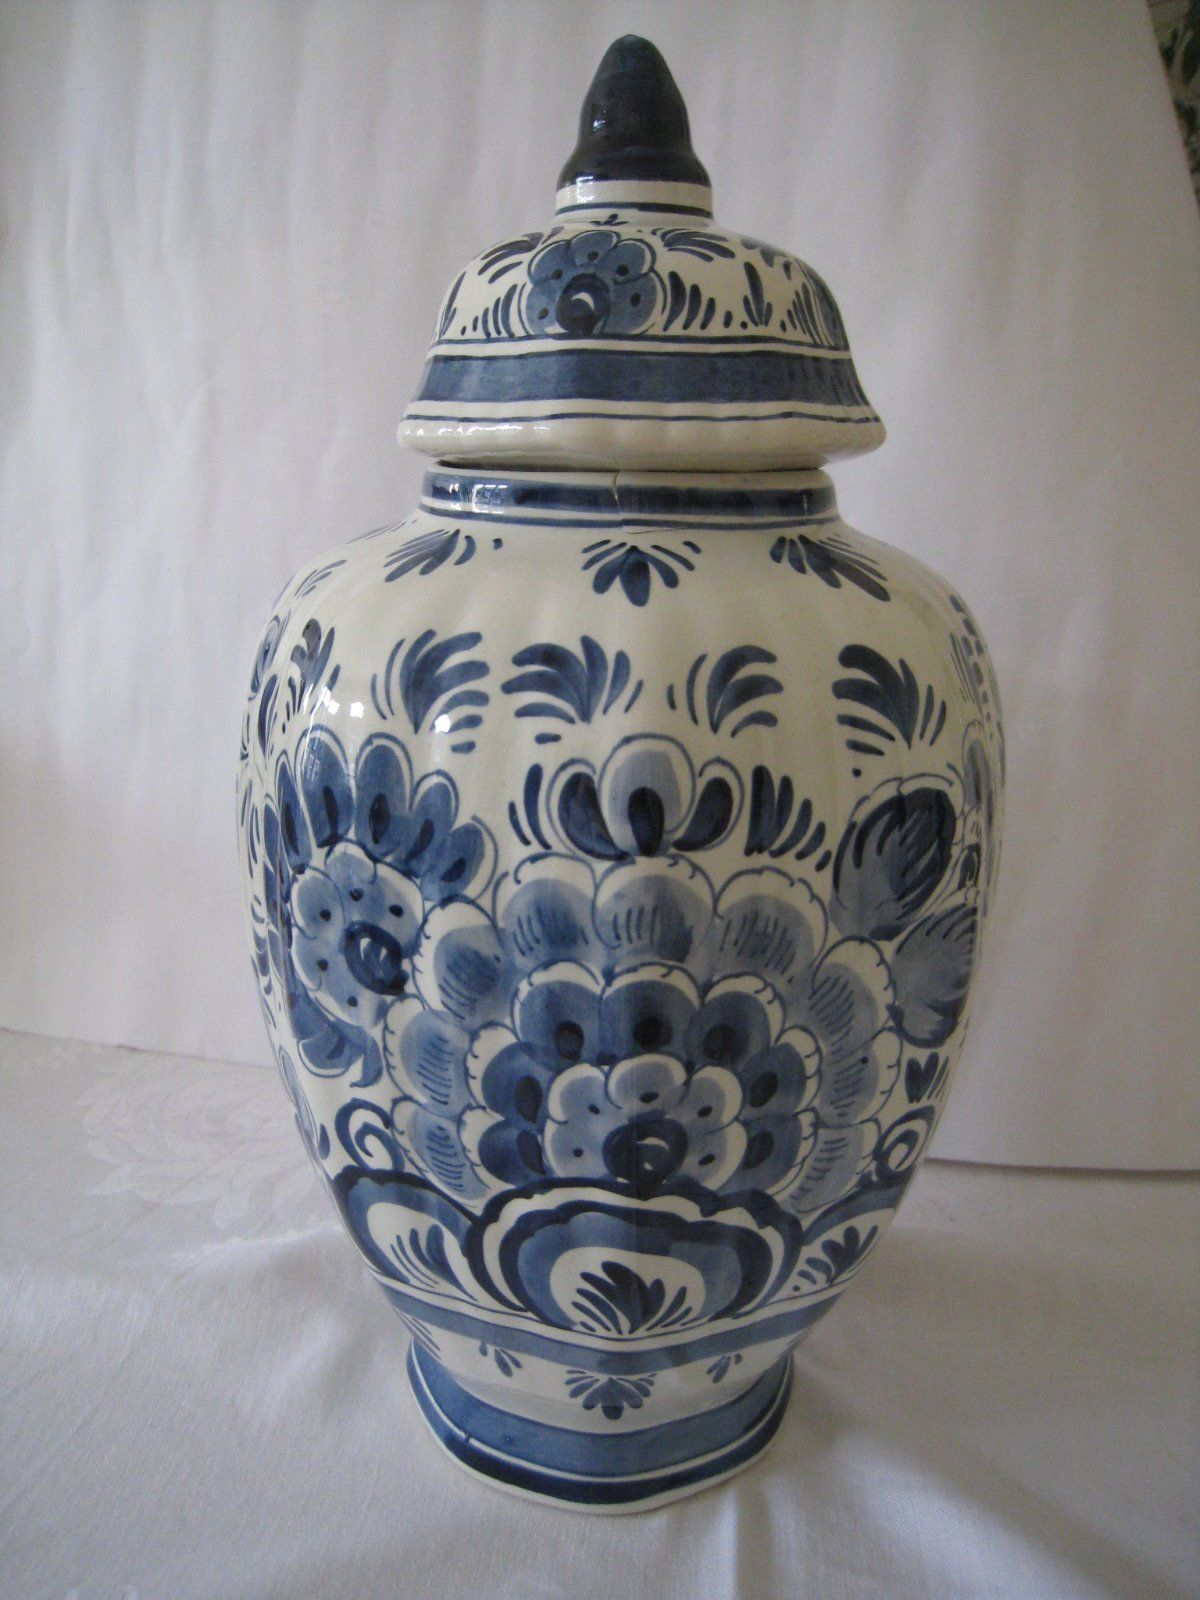 original delft deckelvase delfter porzellan weiss blau blumenvase vase holland ebay vasen. Black Bedroom Furniture Sets. Home Design Ideas